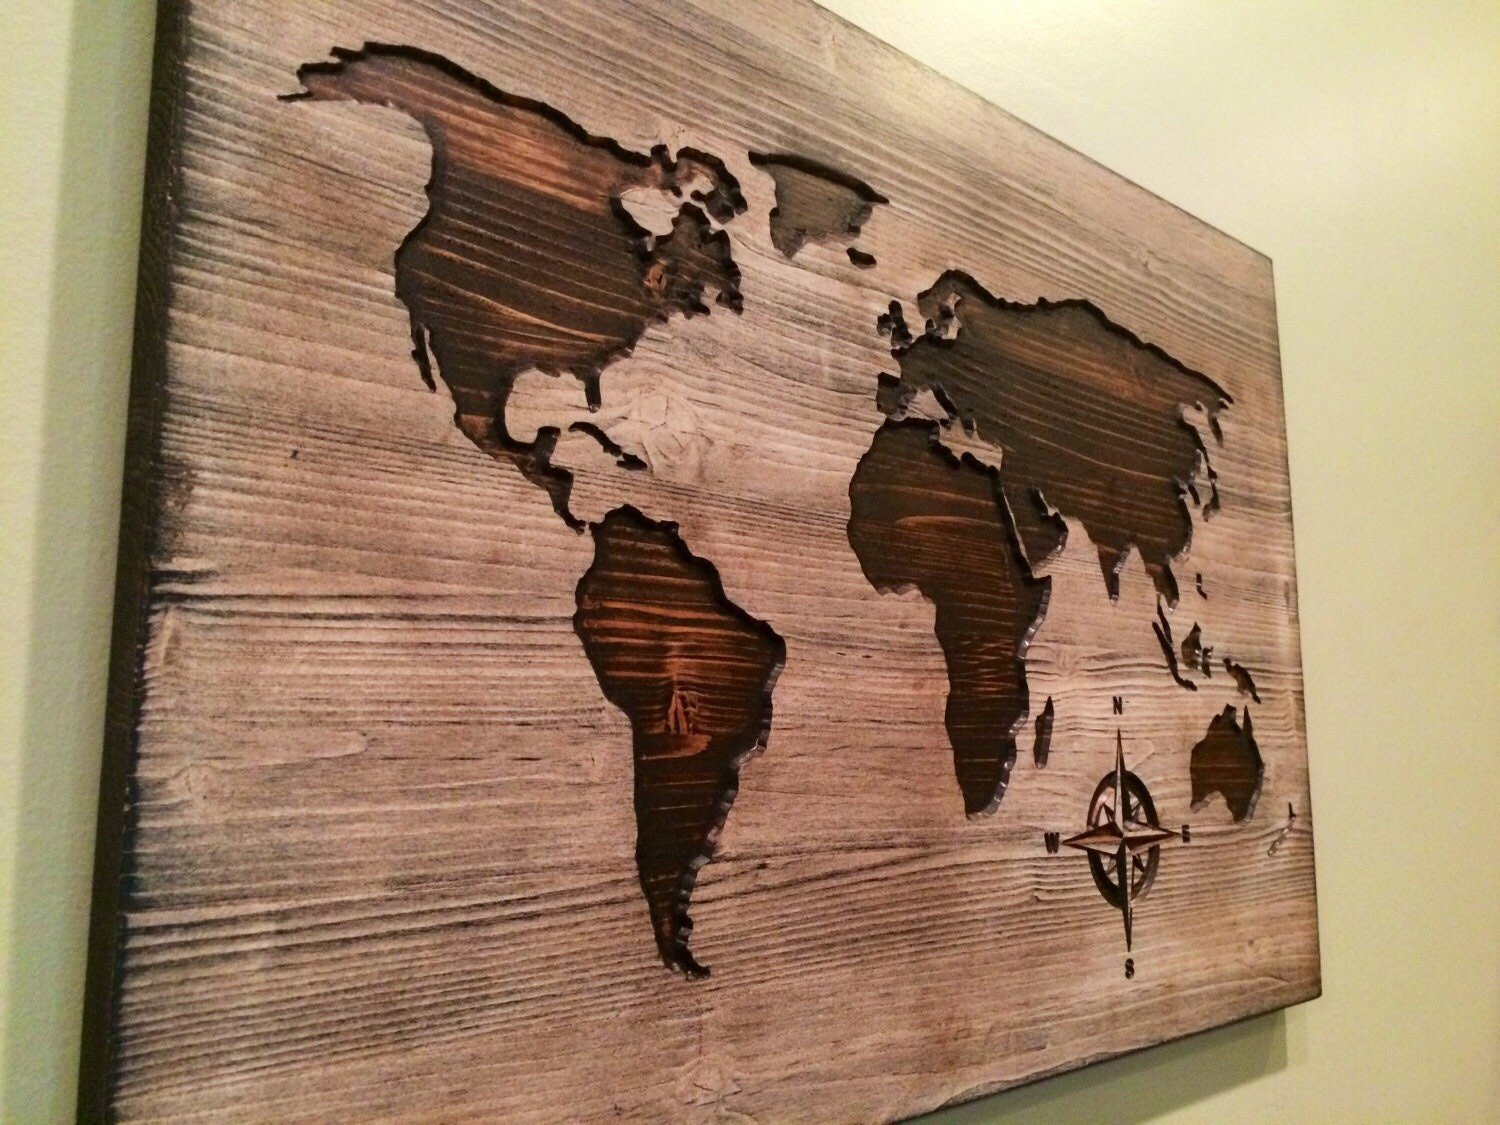 World map sticker for wall india - Carved Wooden World Map Wood Wall Art World Map Home Decor World